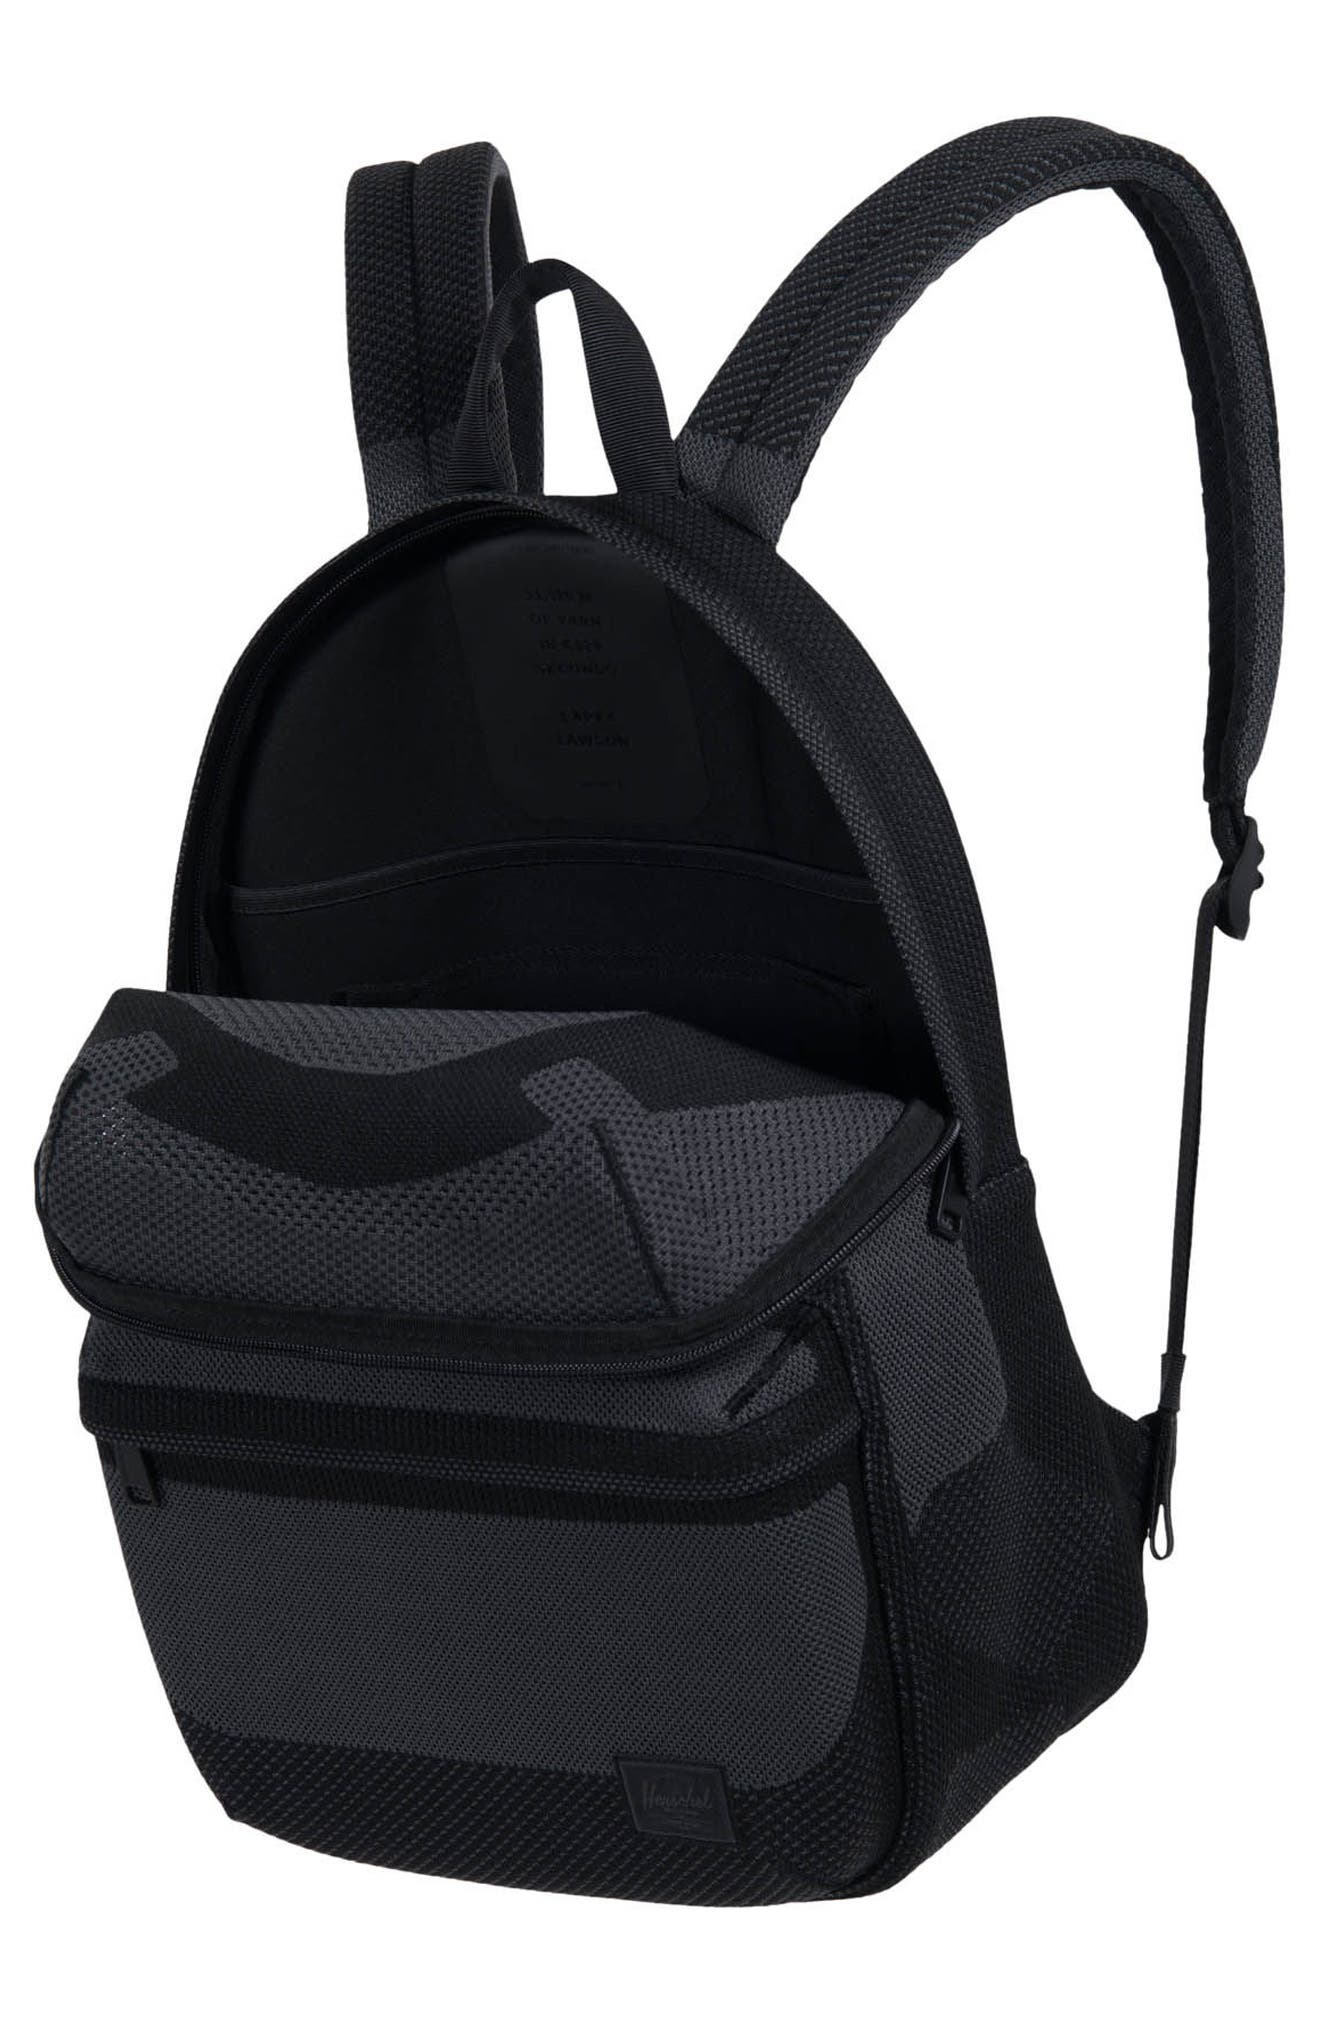 Apex Lawson Backpack,                             Alternate thumbnail 3, color,